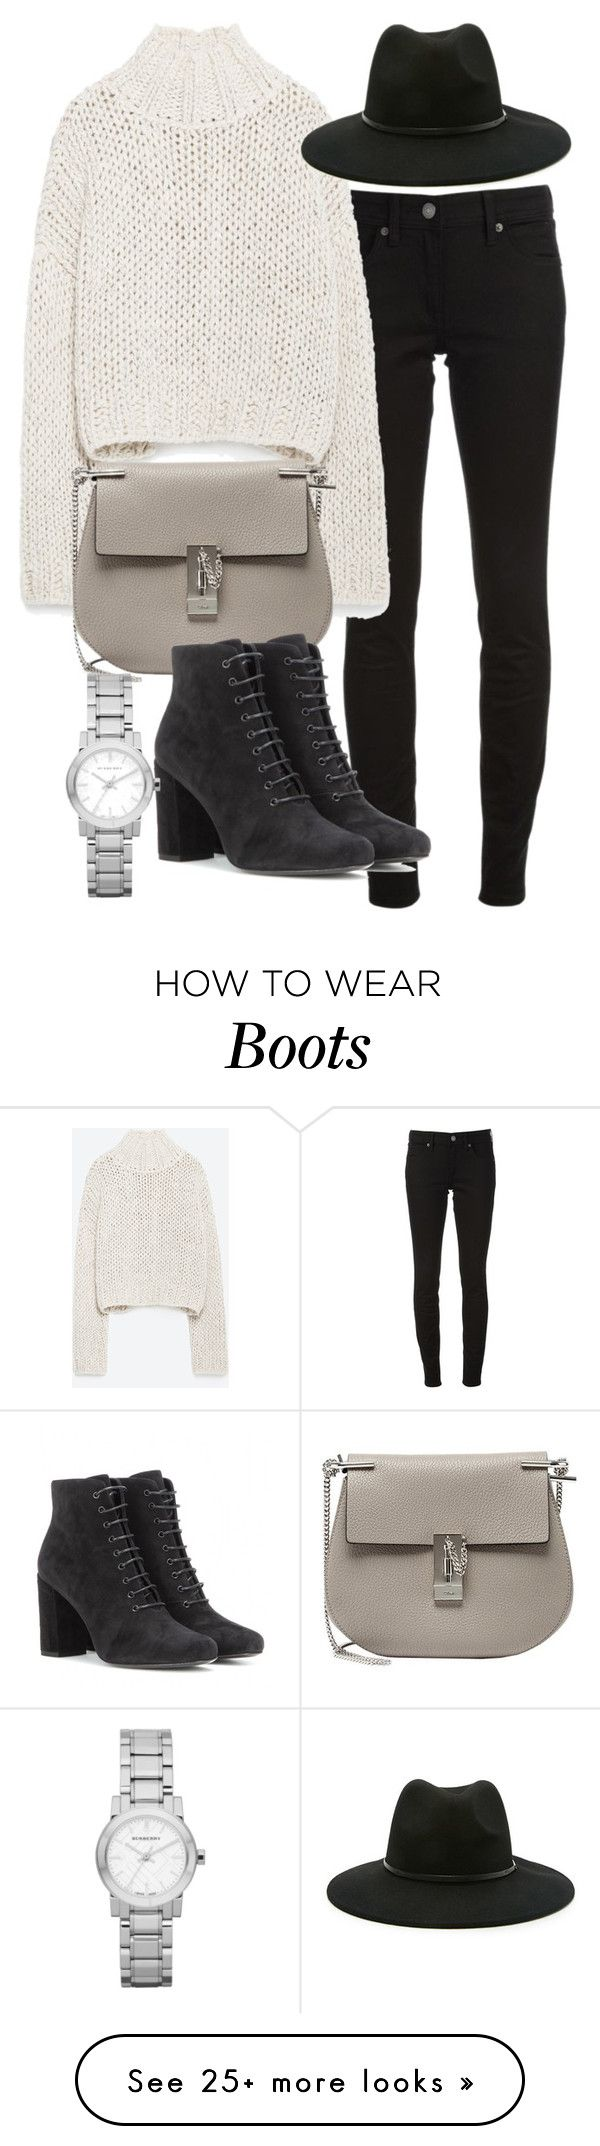 """Untitled #19396"" by florencia95 on Polyvore featuring Burberry, Zara, Forever 21, Chloé and Yves Saint Laurent"